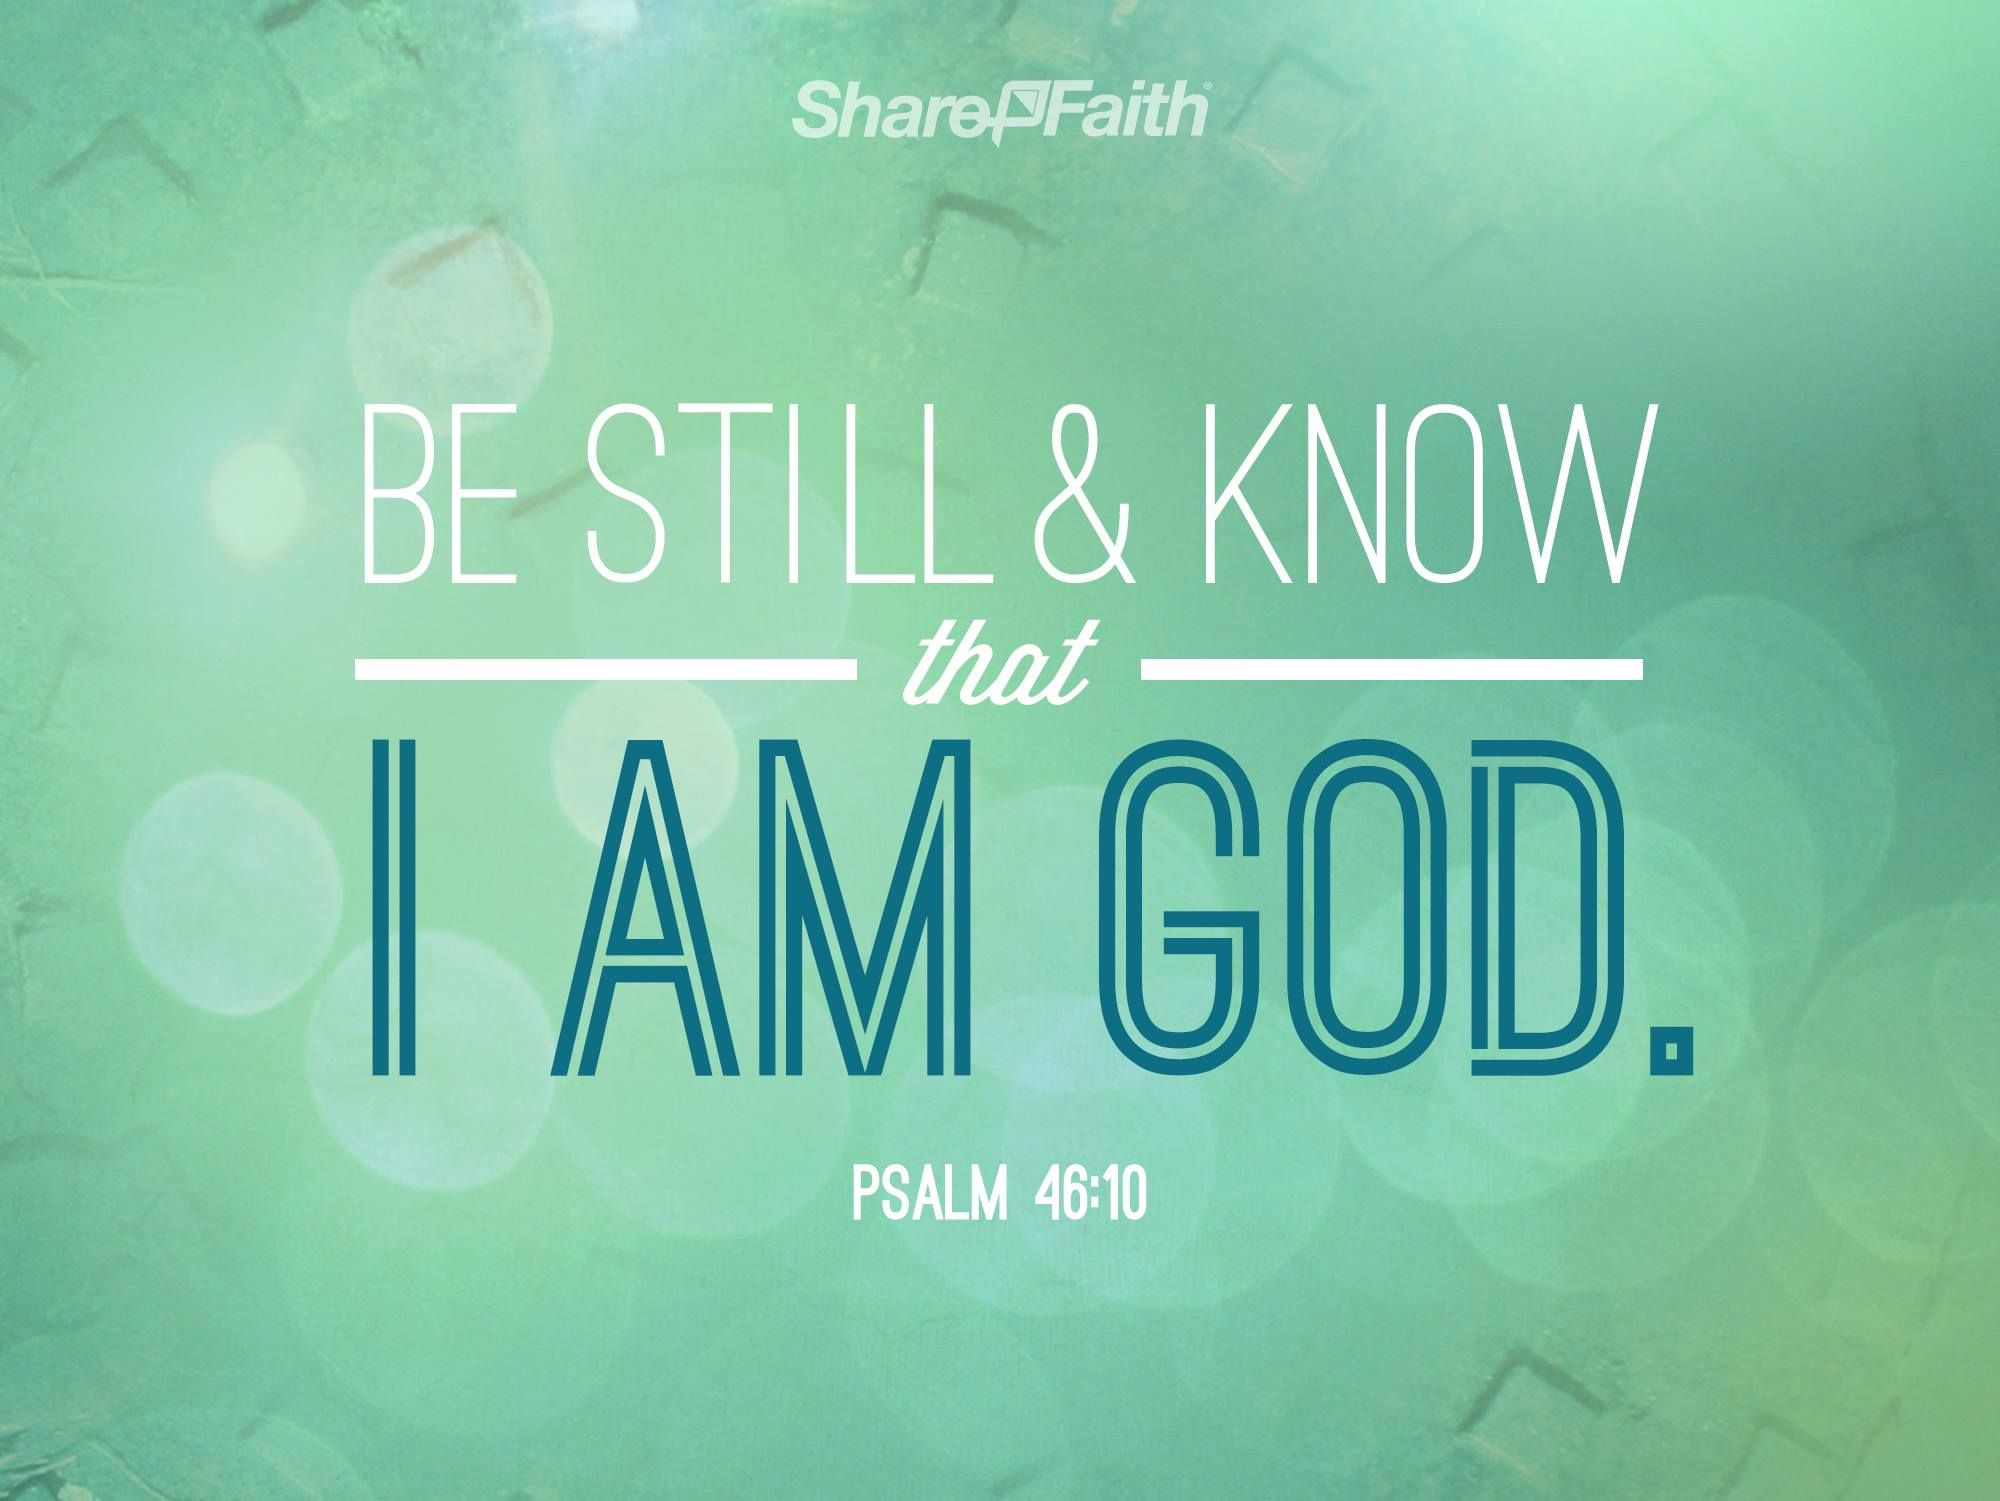 Church announcements announcement backgrounds sharefaith page 2 - Psalm 46 10 Be Still And Know That I Am God Sharefaith